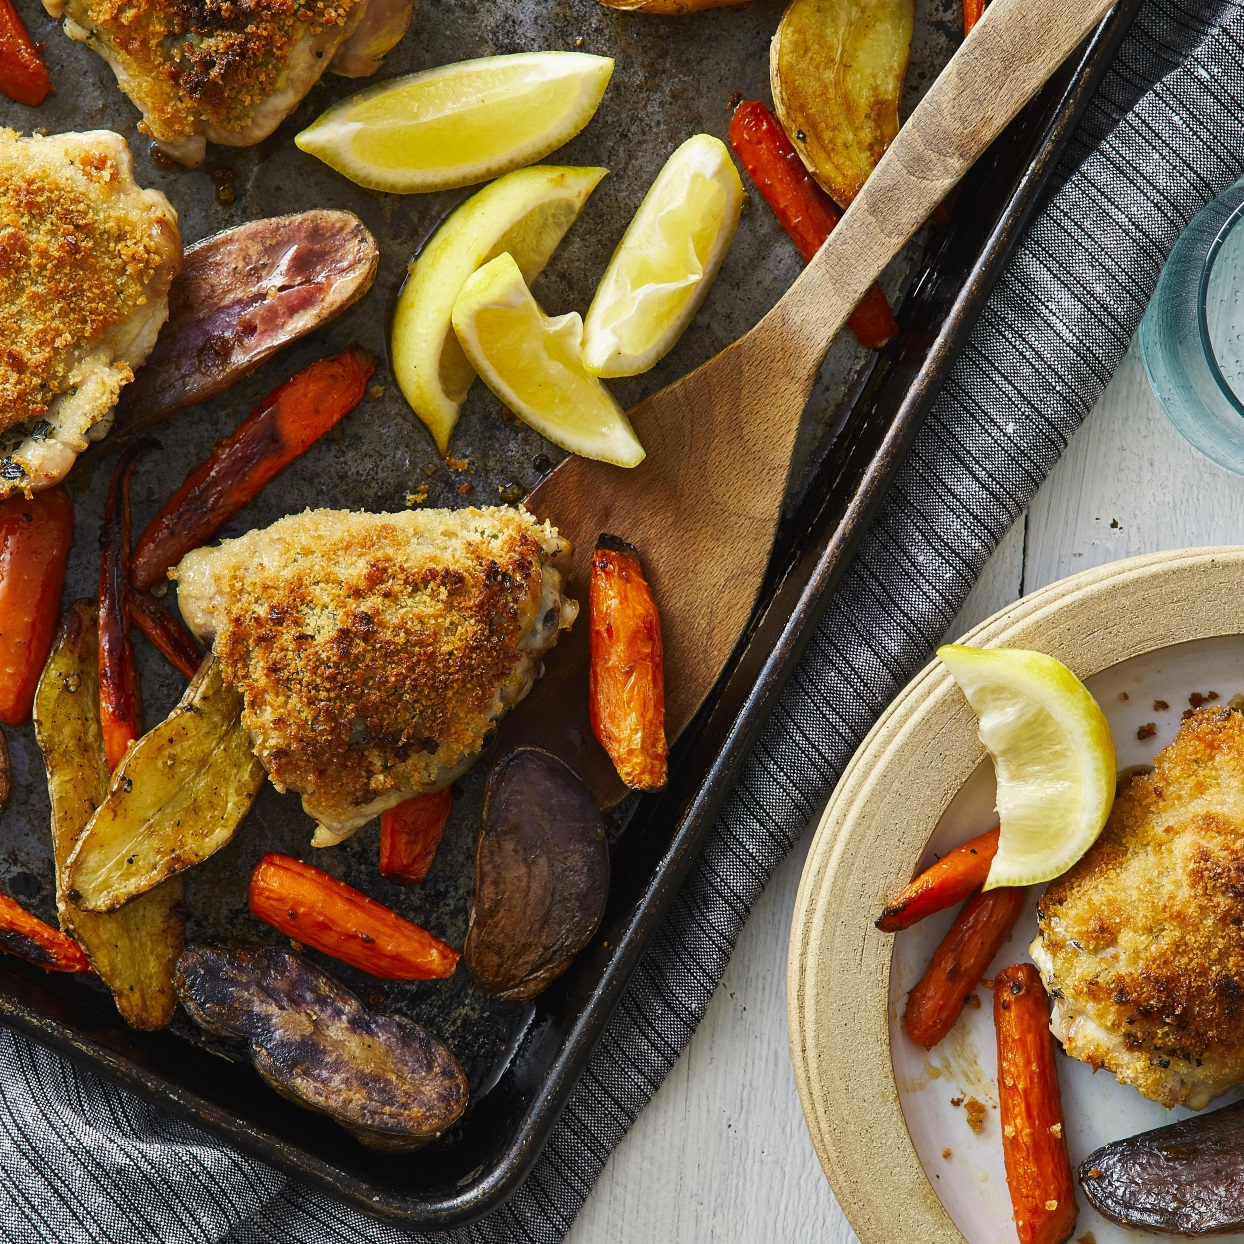 Crispy Lemon-Garlic Chicken Thighs with Roasted Potatoes & Carrots Carolyn Casner